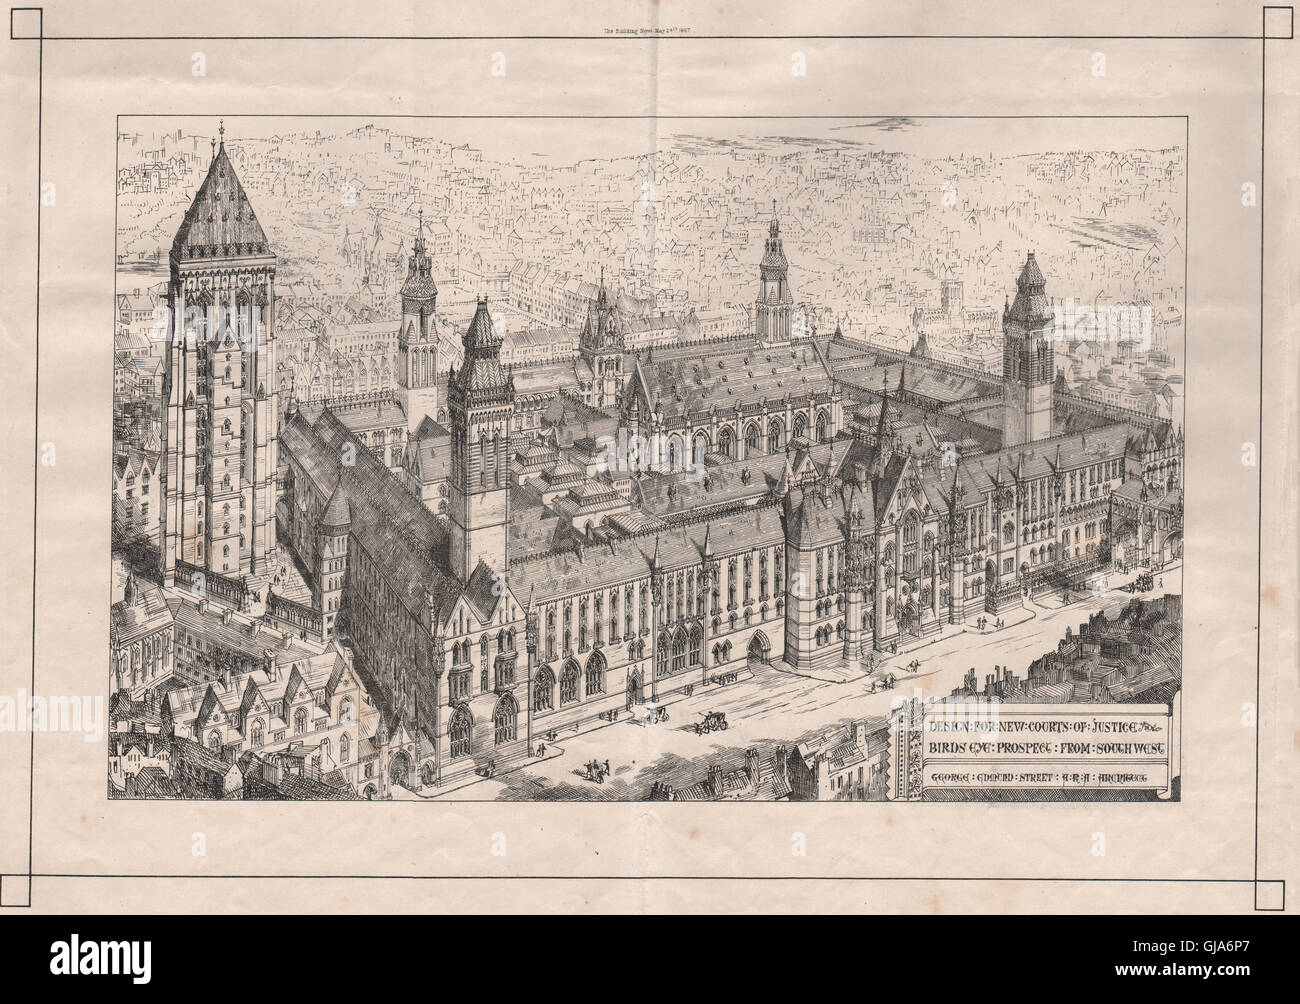 New Courts of Justice; birds-eye view; George Edmund Street, Architect, 1867 Stock Photo